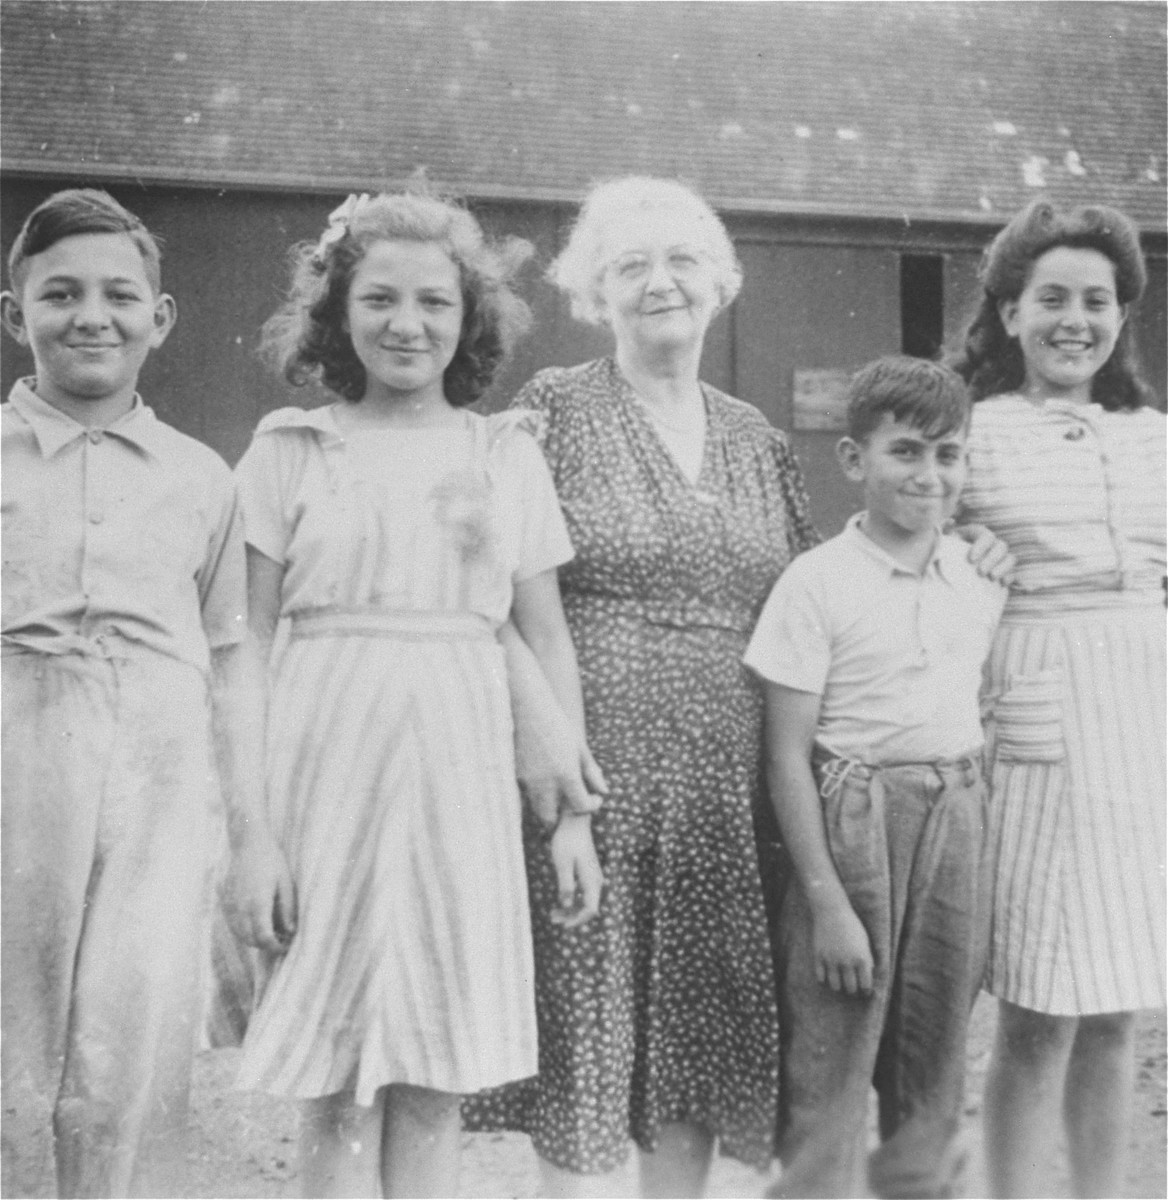 Group portrait of the Muller cousins on their farm in southern Ontario.  Pictured at the left are Henry and Alice Muller, and at the right, Agnes and George Muller.